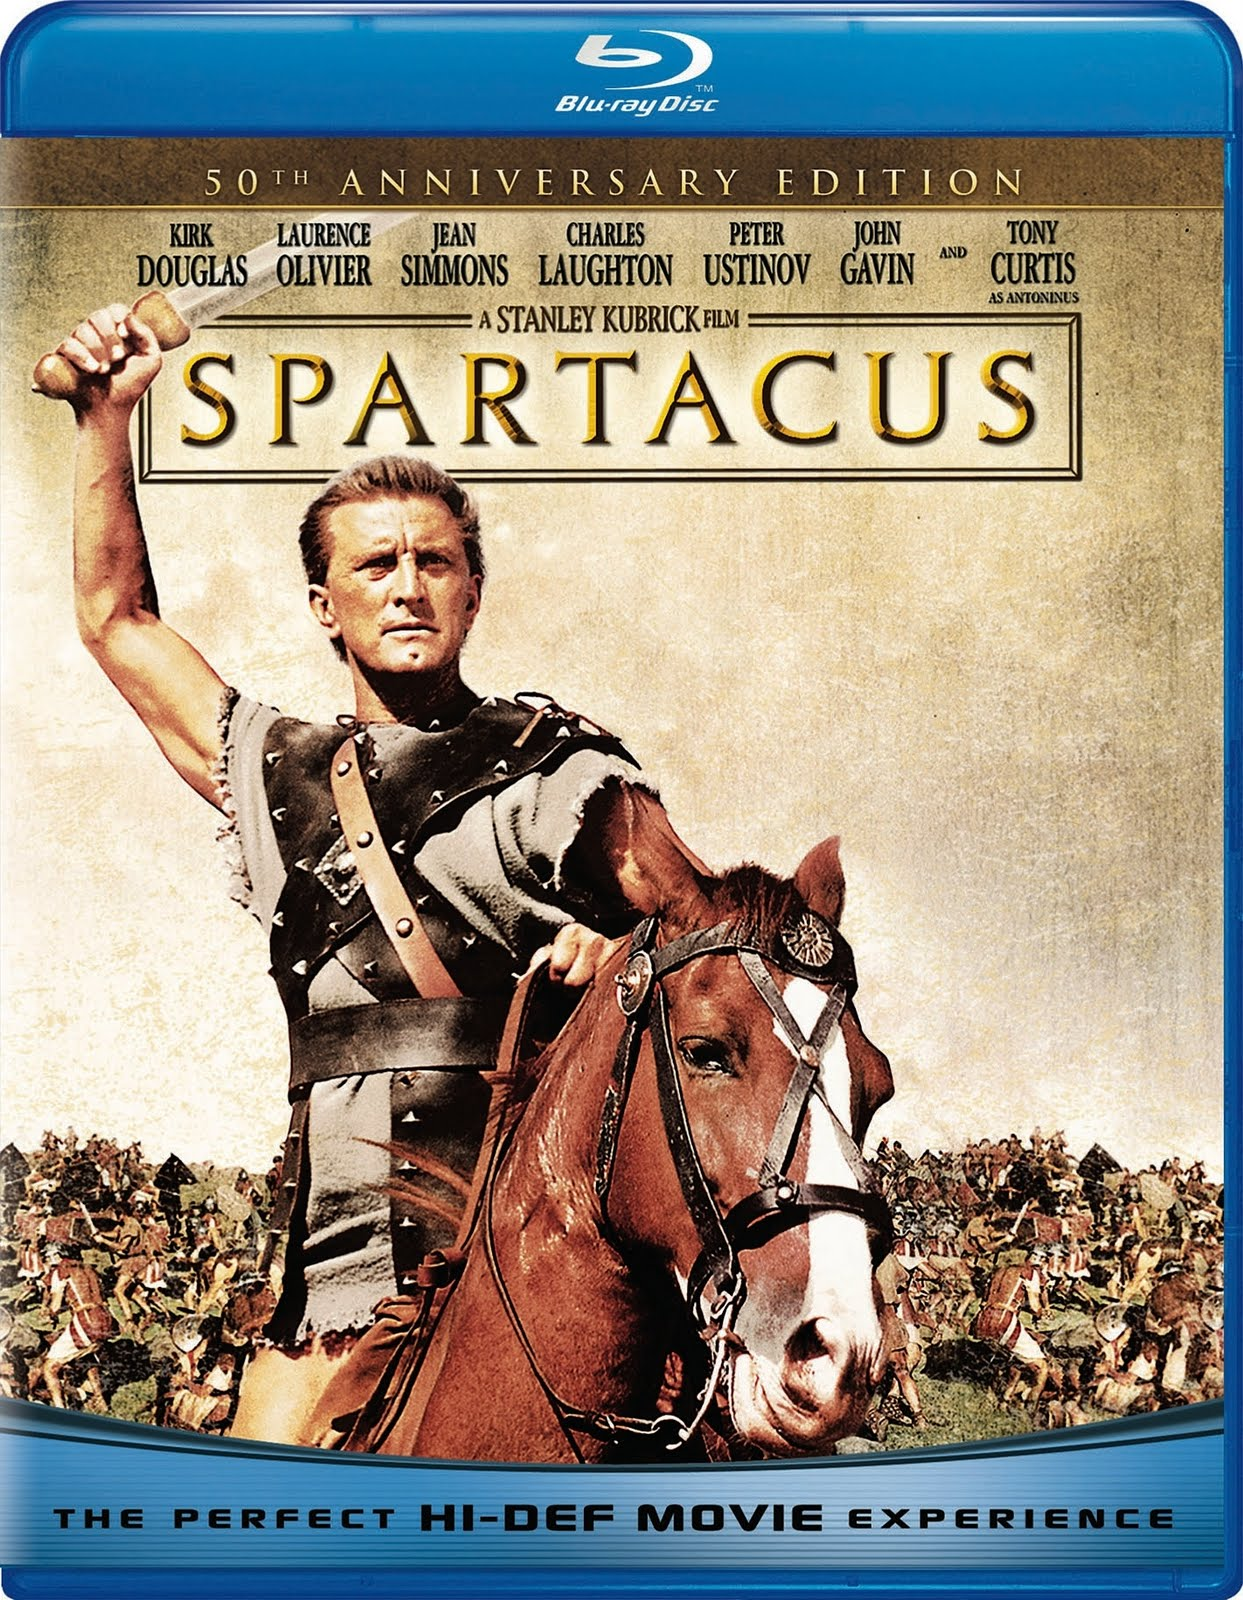 1960 film spartacus Spartacus (film)'s wiki: spartacus is a 1960 american epic historical drama film directed by stanley kubrick[3] the screenplay by dalton trumbo was based on the novel spartacus by howard fast it was inspired by the life story of the leader of a slave revolt in antiquity, sparta.